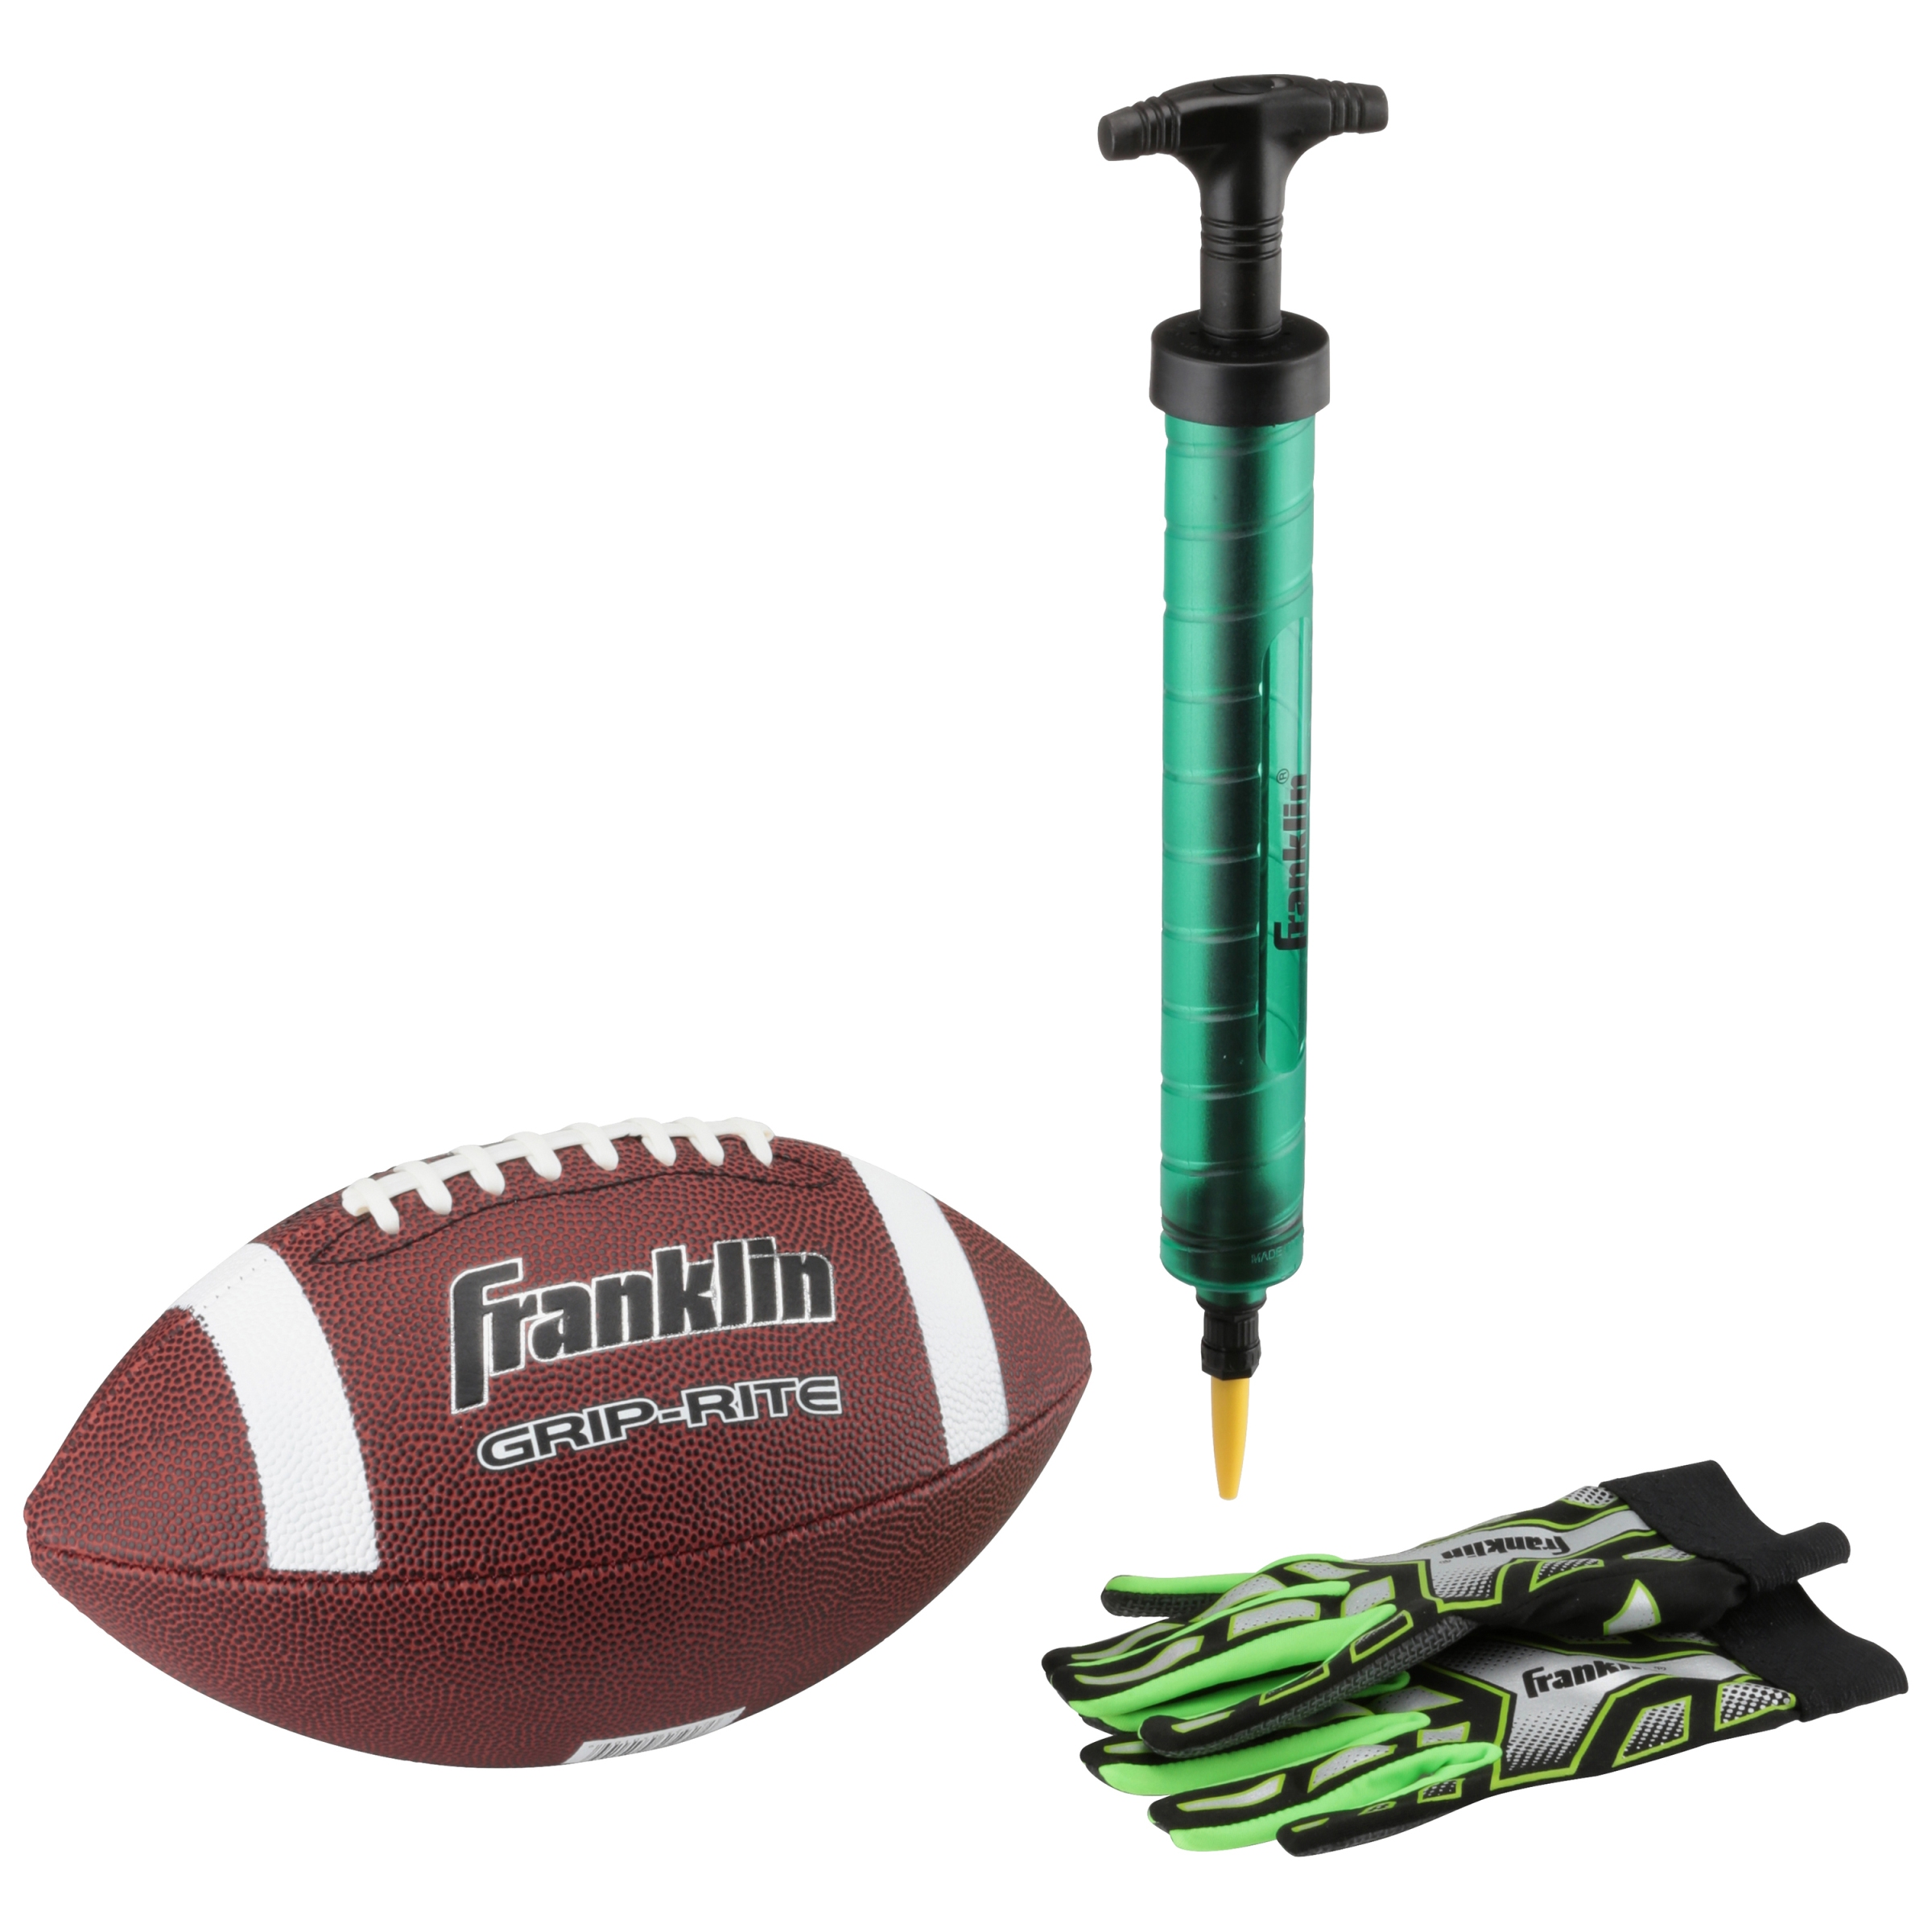 Franklin Football Sports Pack 3 pc Pack by Franklin Sports, Inc.